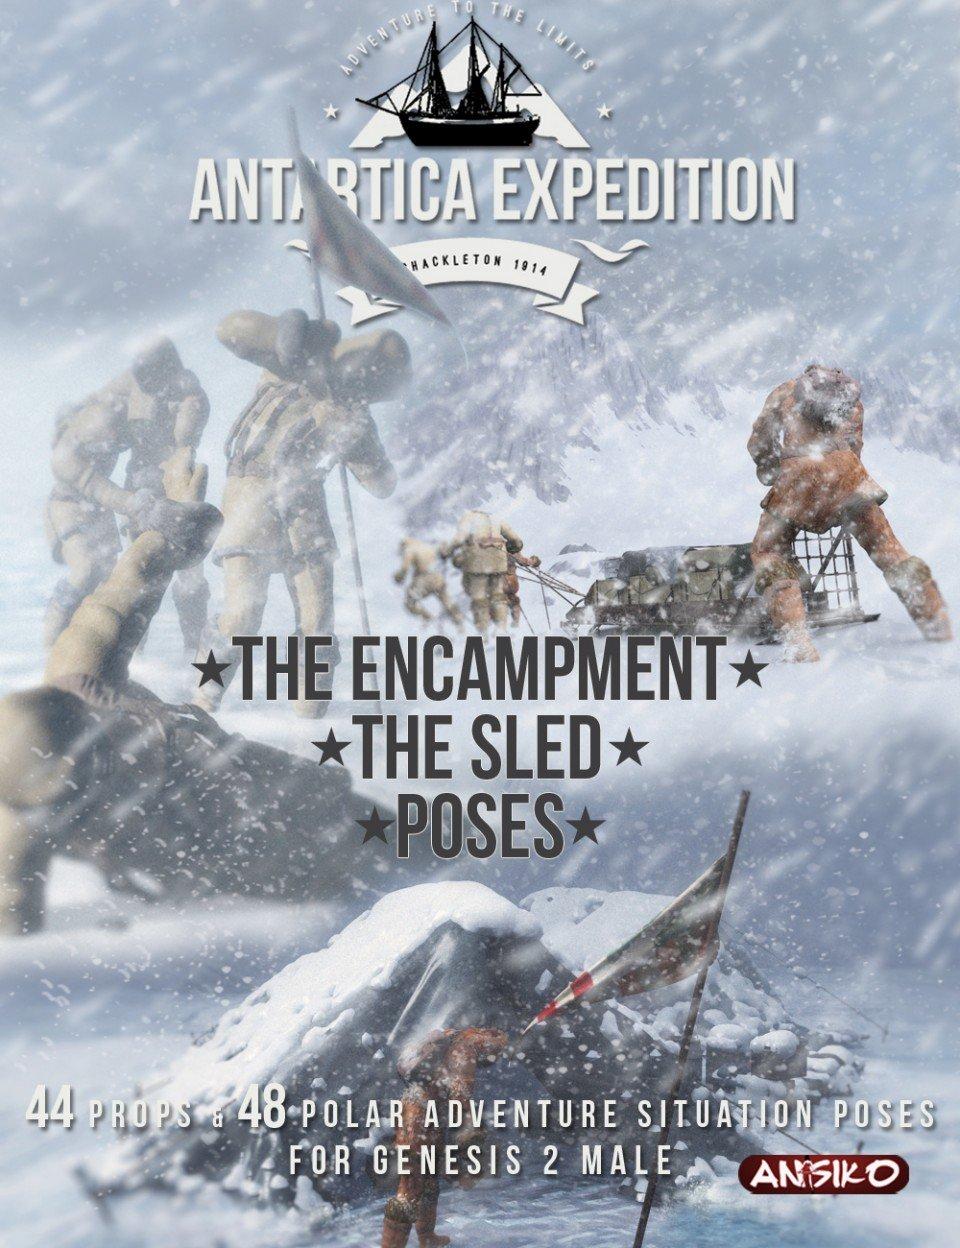 Antarctica Expedition: The Encampment, Sled and Poses_DAZ3D下载站